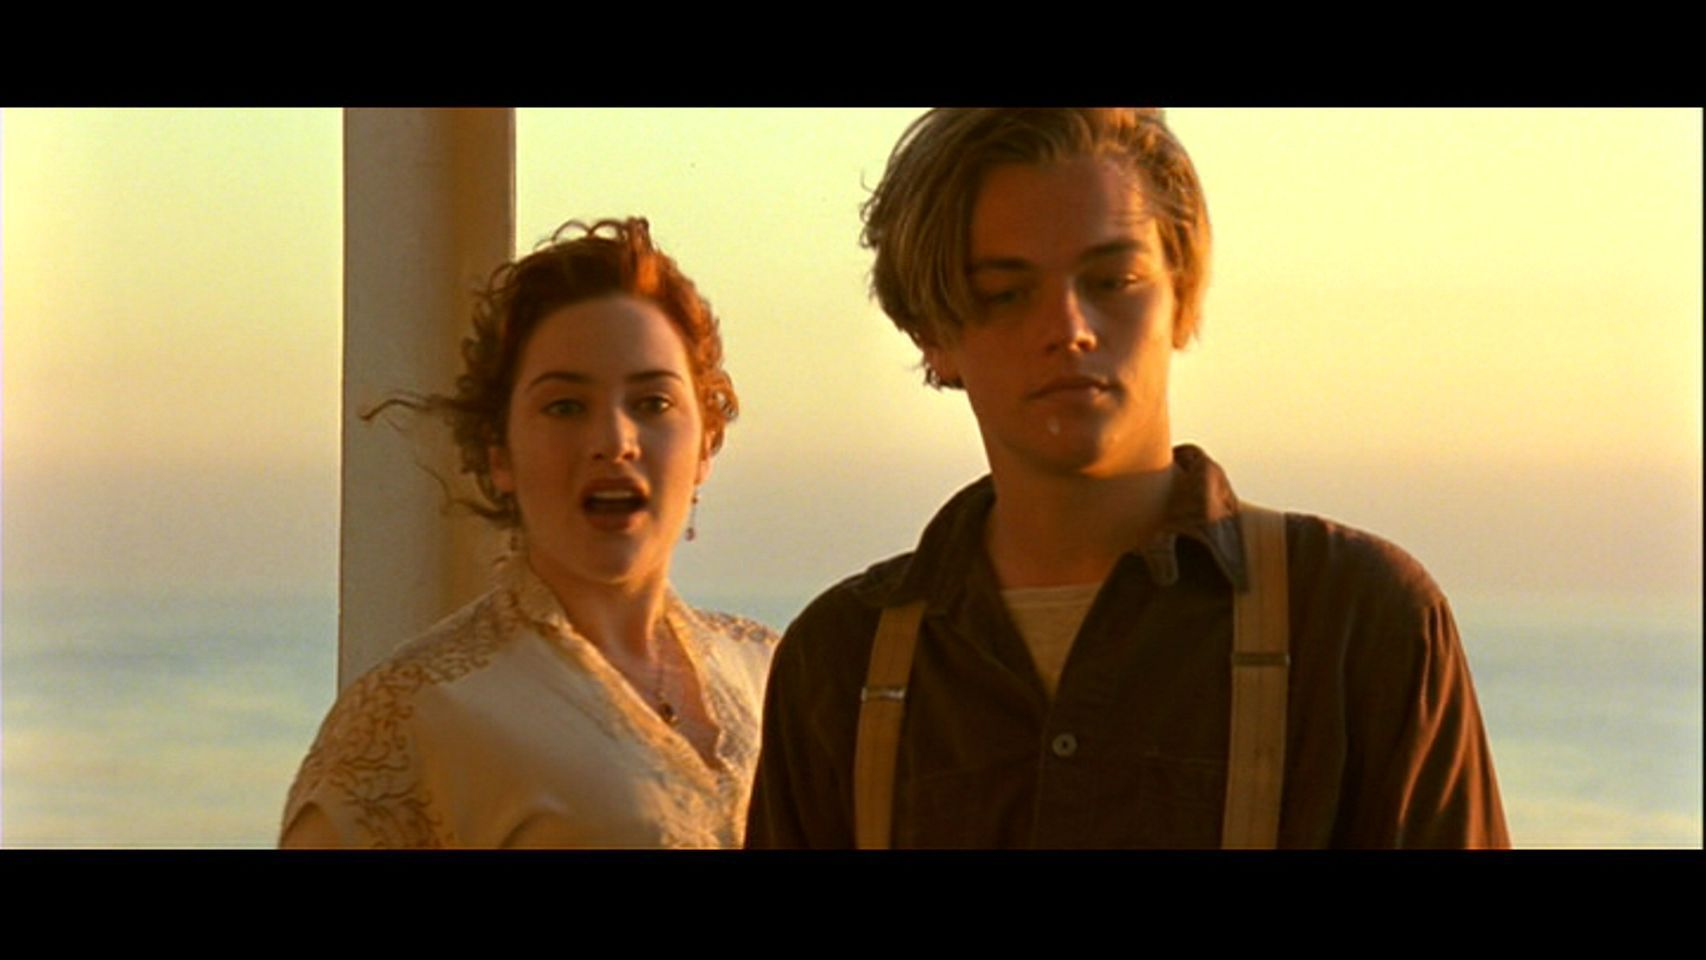 the budding relationship between jack and rose in movie titanic Learn more about the titanic movie, jack and rose dawson, the making of the titanic earned its place as the most nominated movie in film history in total, the film was the main (fictional) story is of course the love story between jack and rose, two passengers from entirely different social classes.